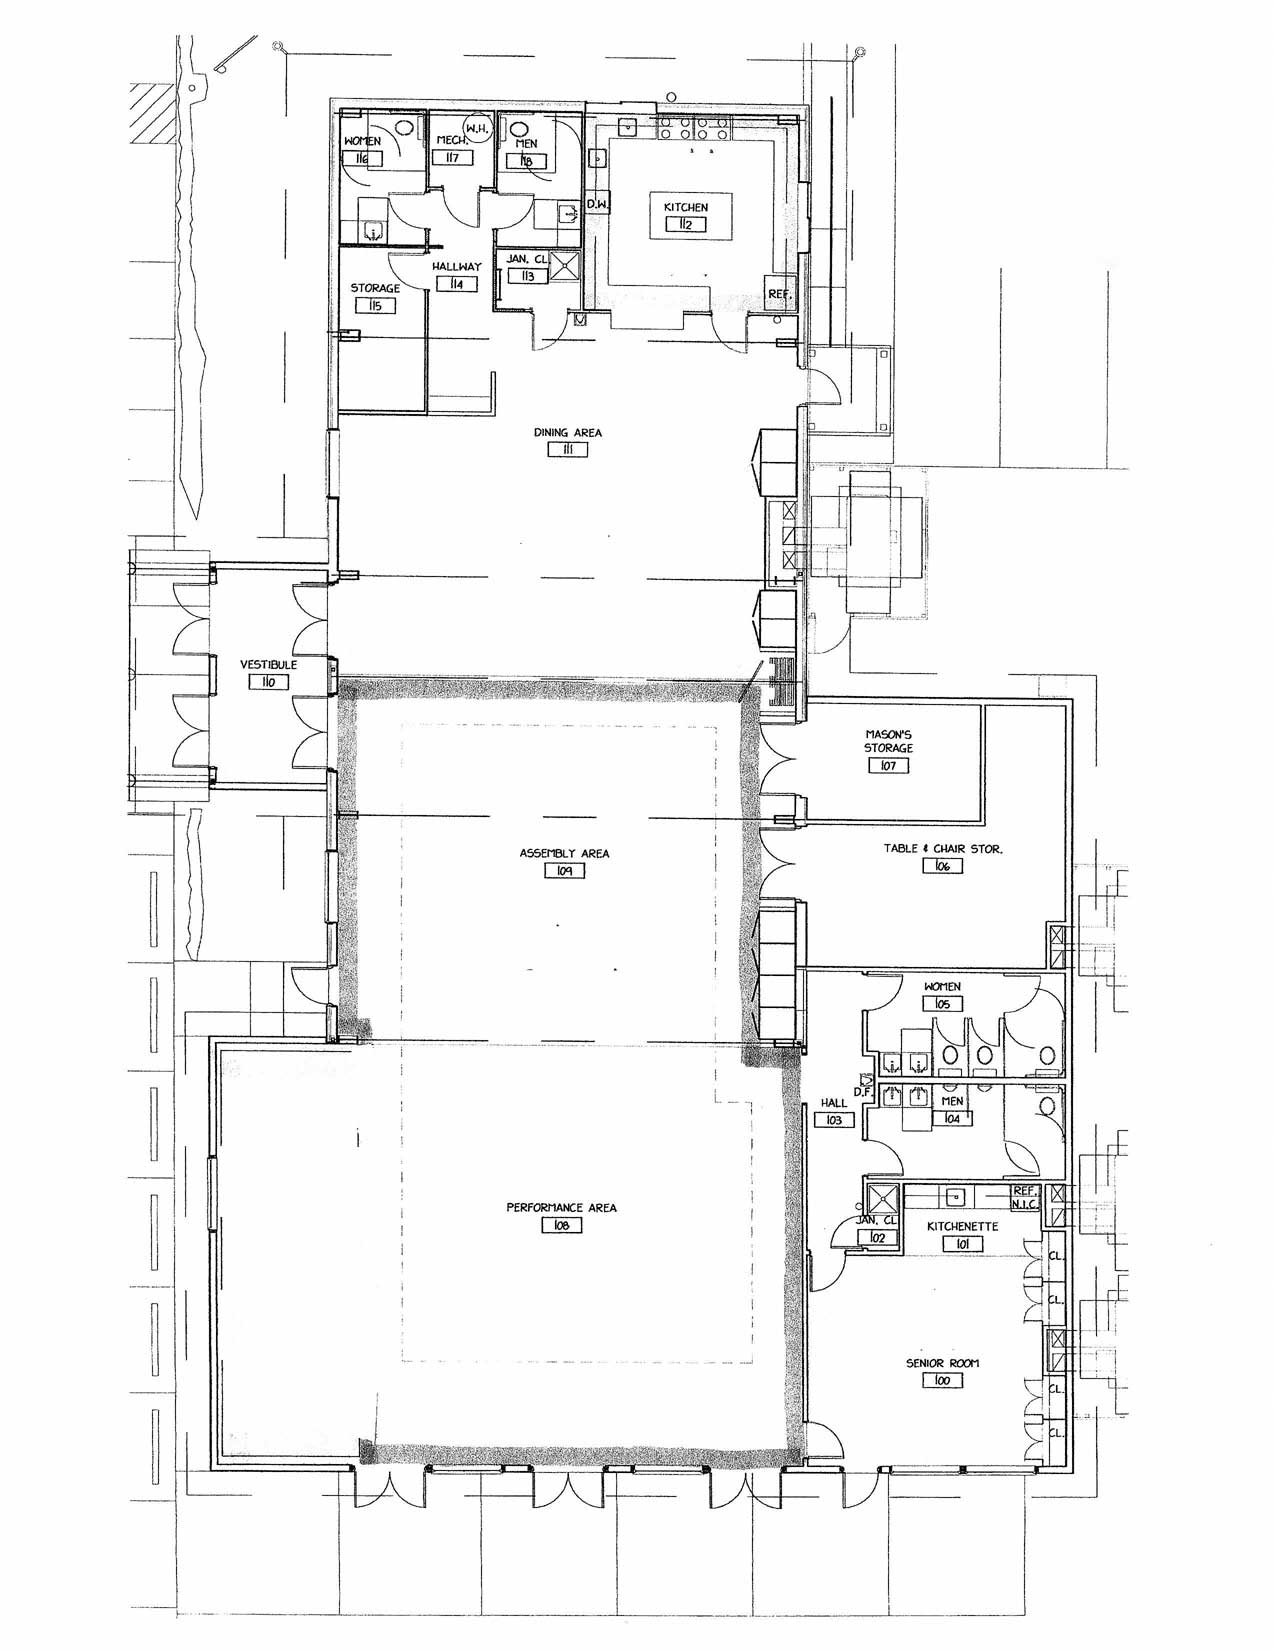 Dolores Community Center Floor Plan